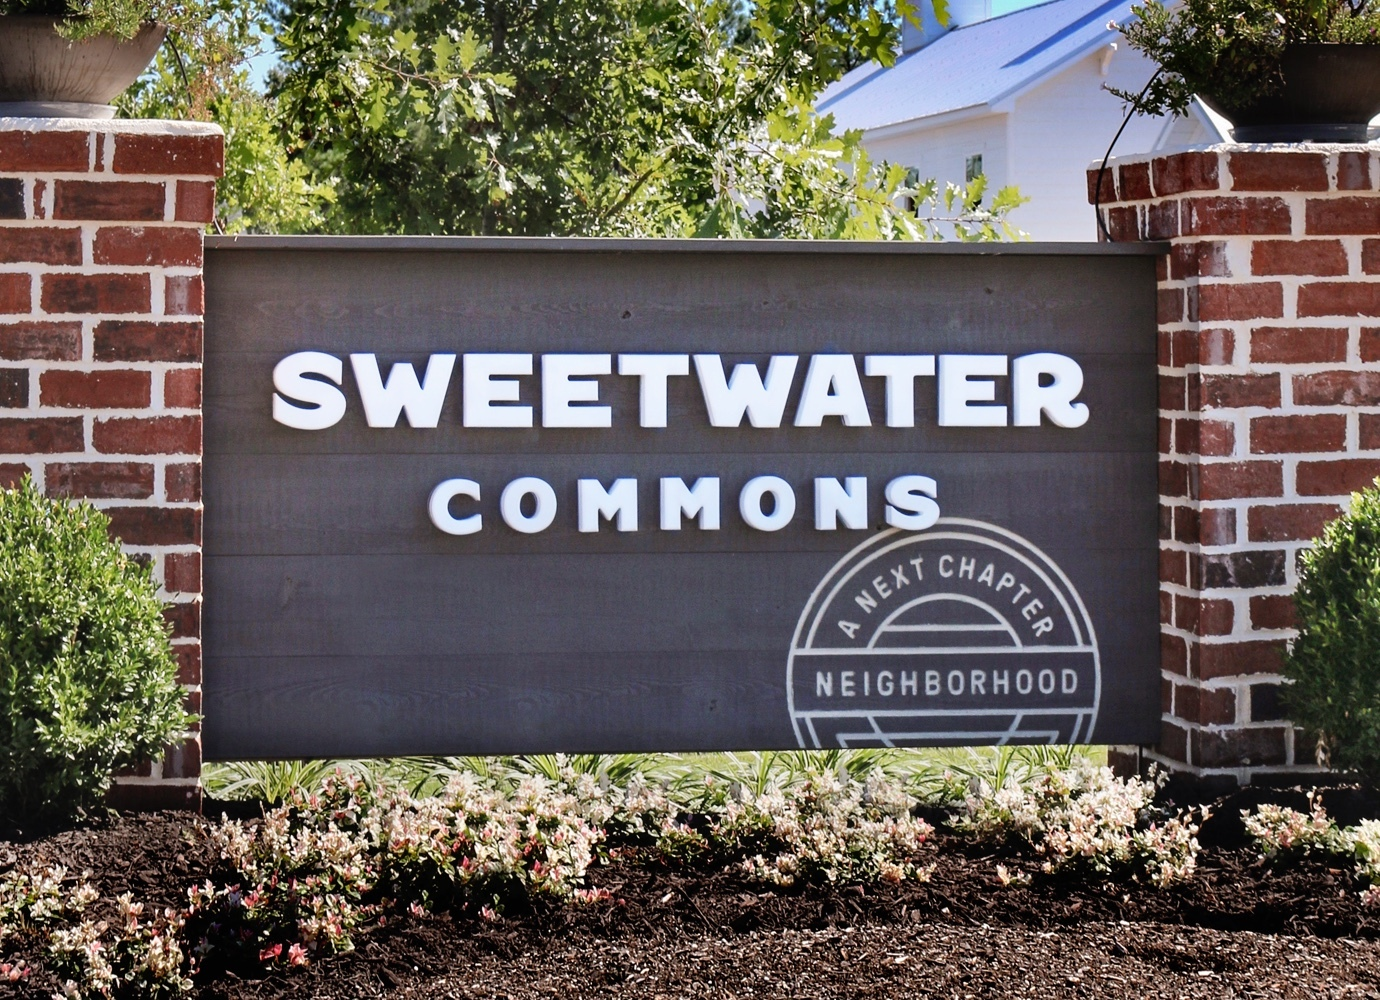 Entry sign at Sweetwater Commons, a Next Chapter neighborhood.